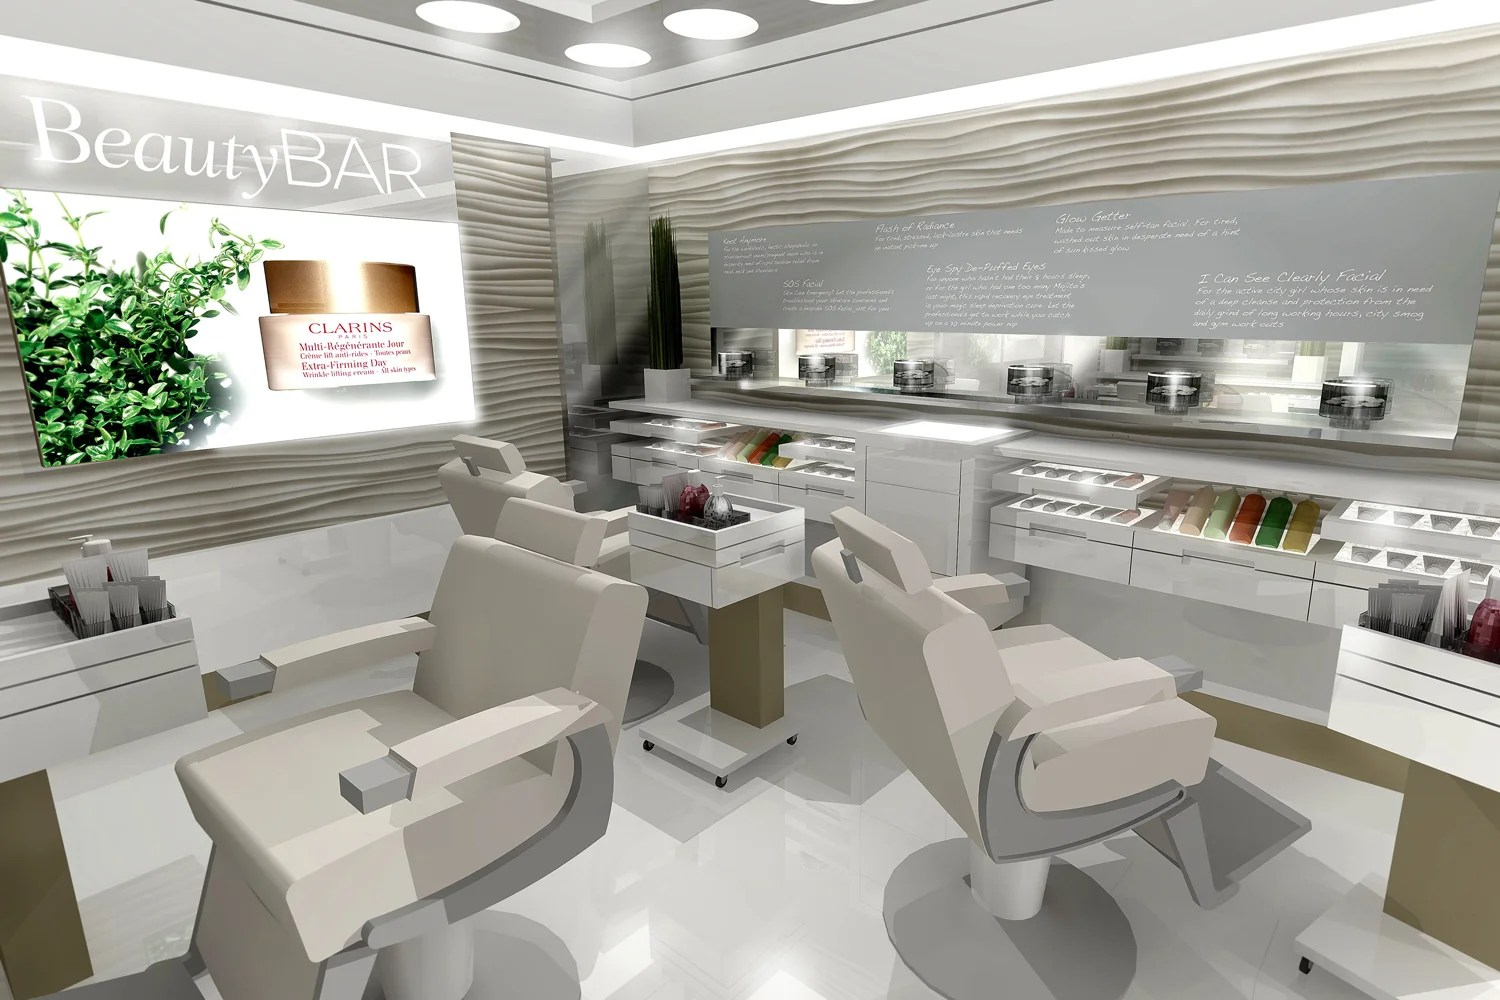 Fast beauty Clarins opens new BeautyBAR at John Lewis